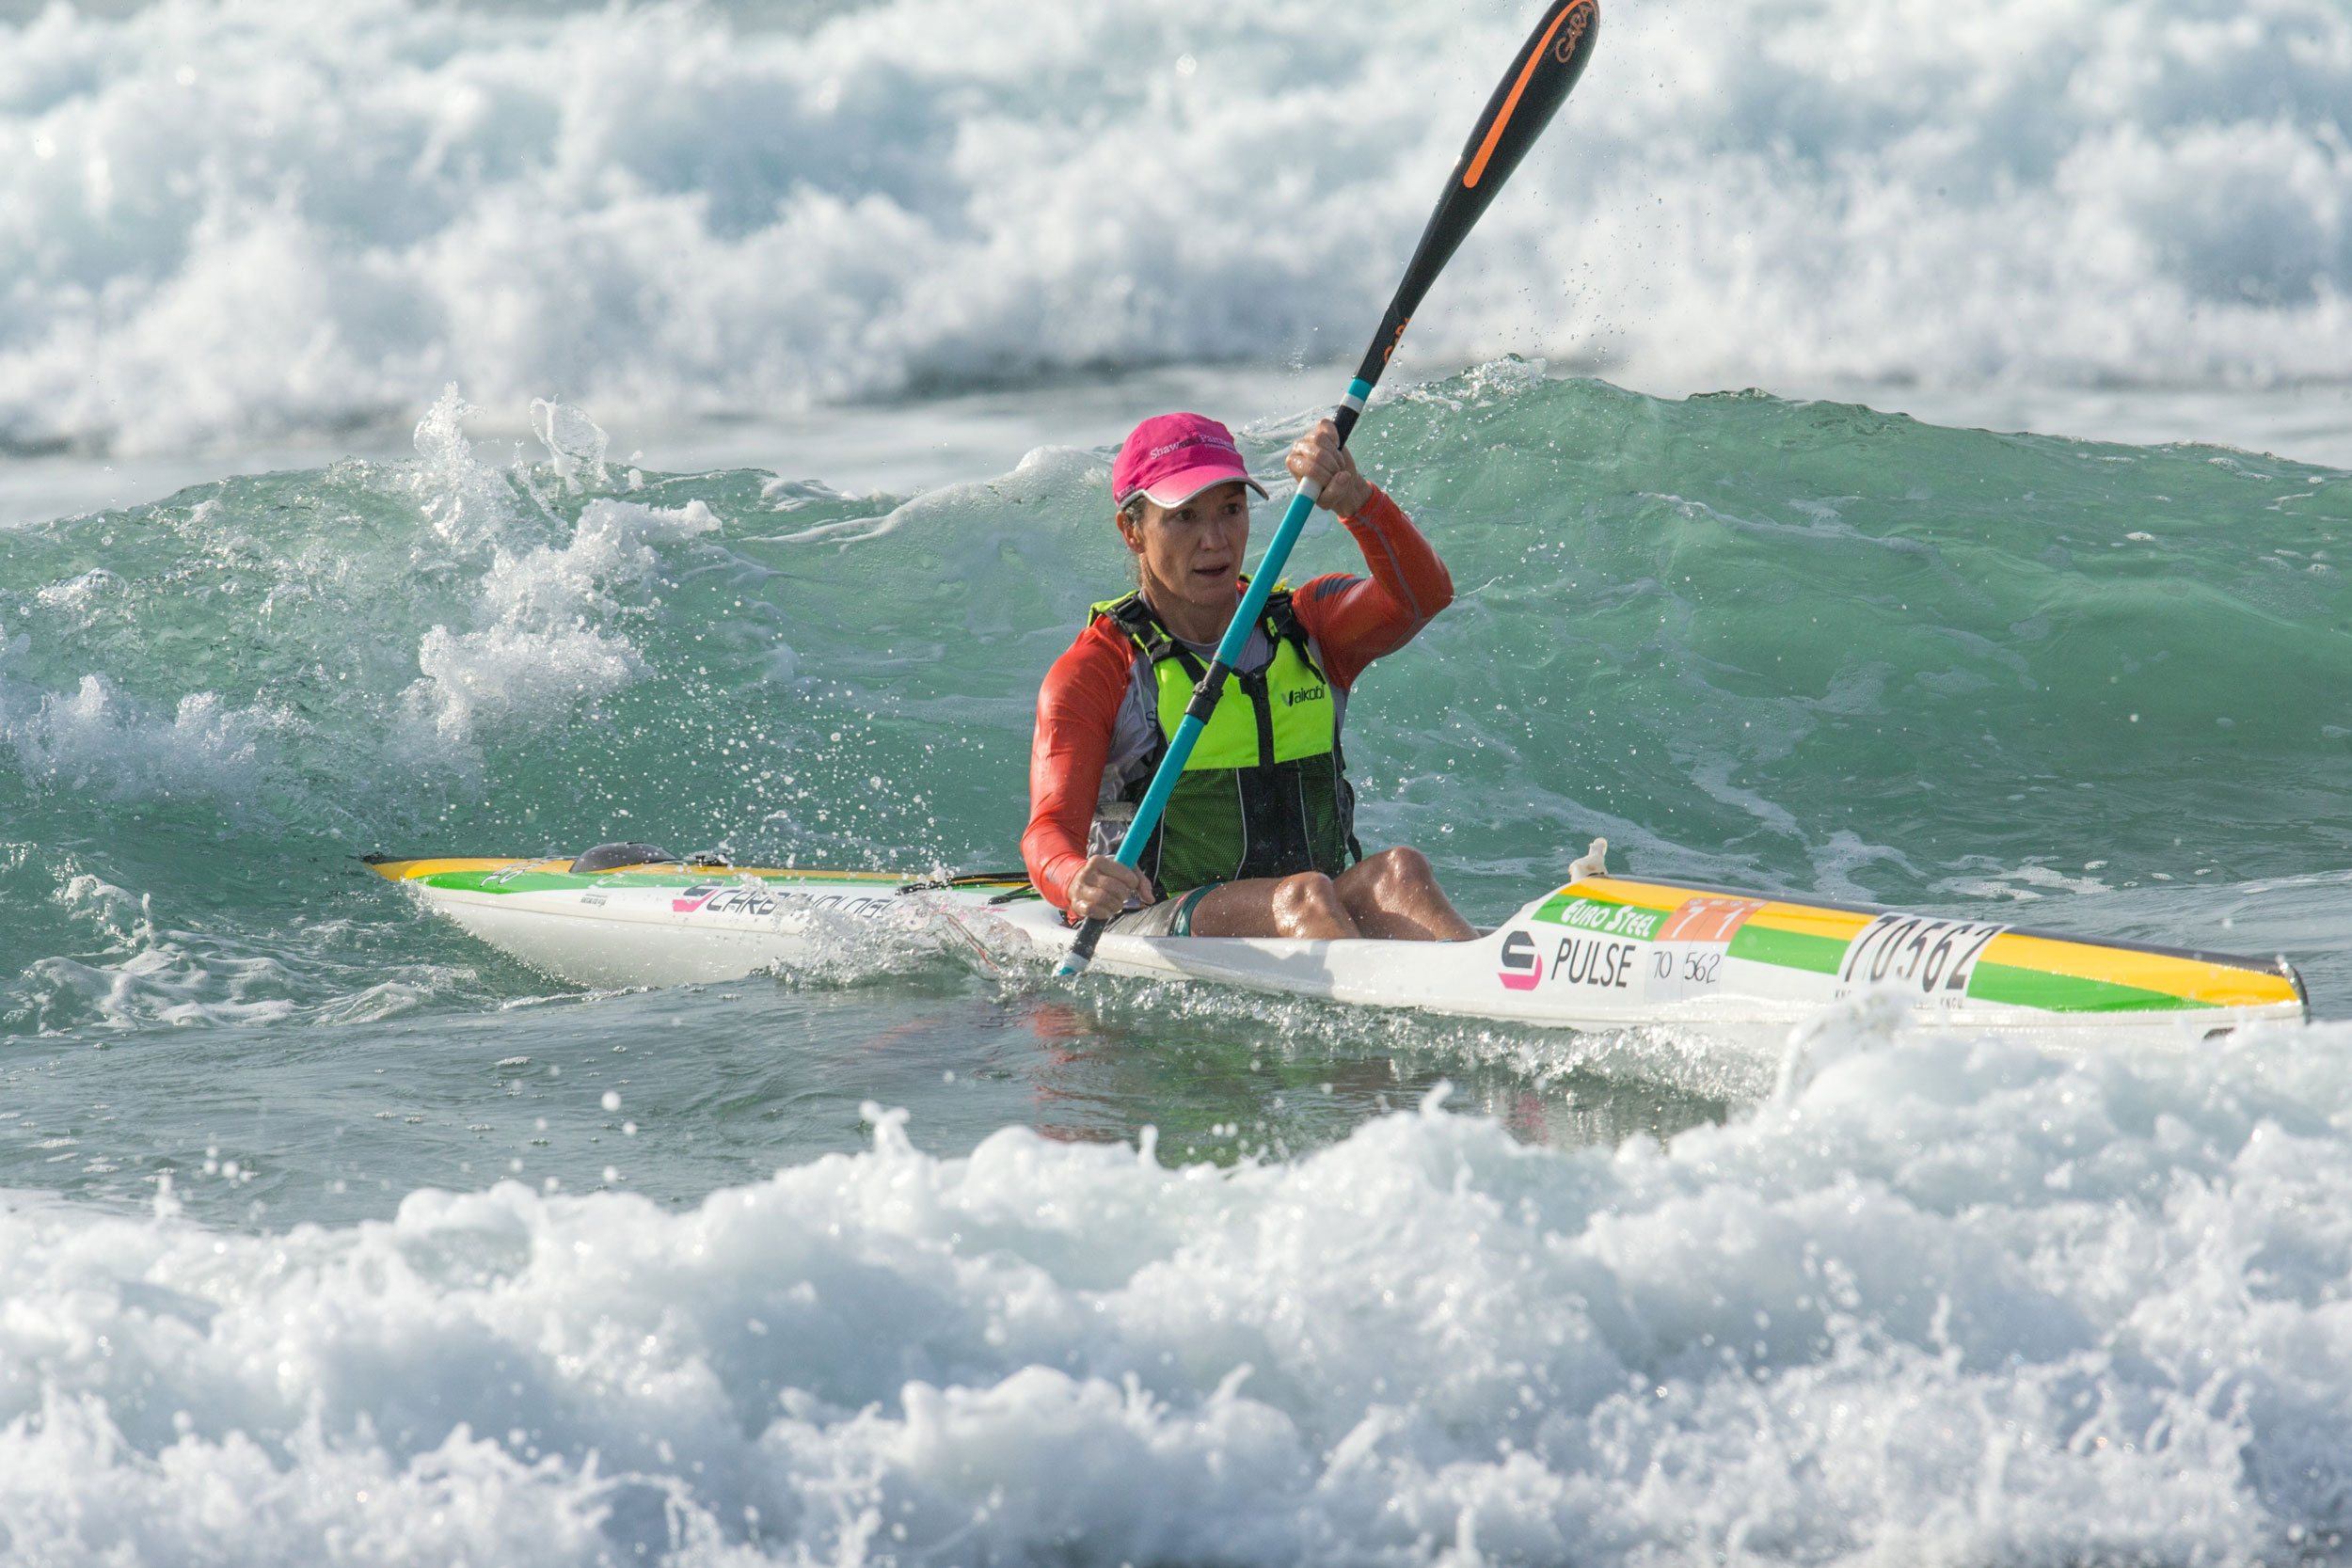 uMgeni Park's Hayley Nixon won the women's national single and doubles ski title at the 2018 Pete Marlin Surfski Race. PHOTO: Top Foto (Gameplan Media)